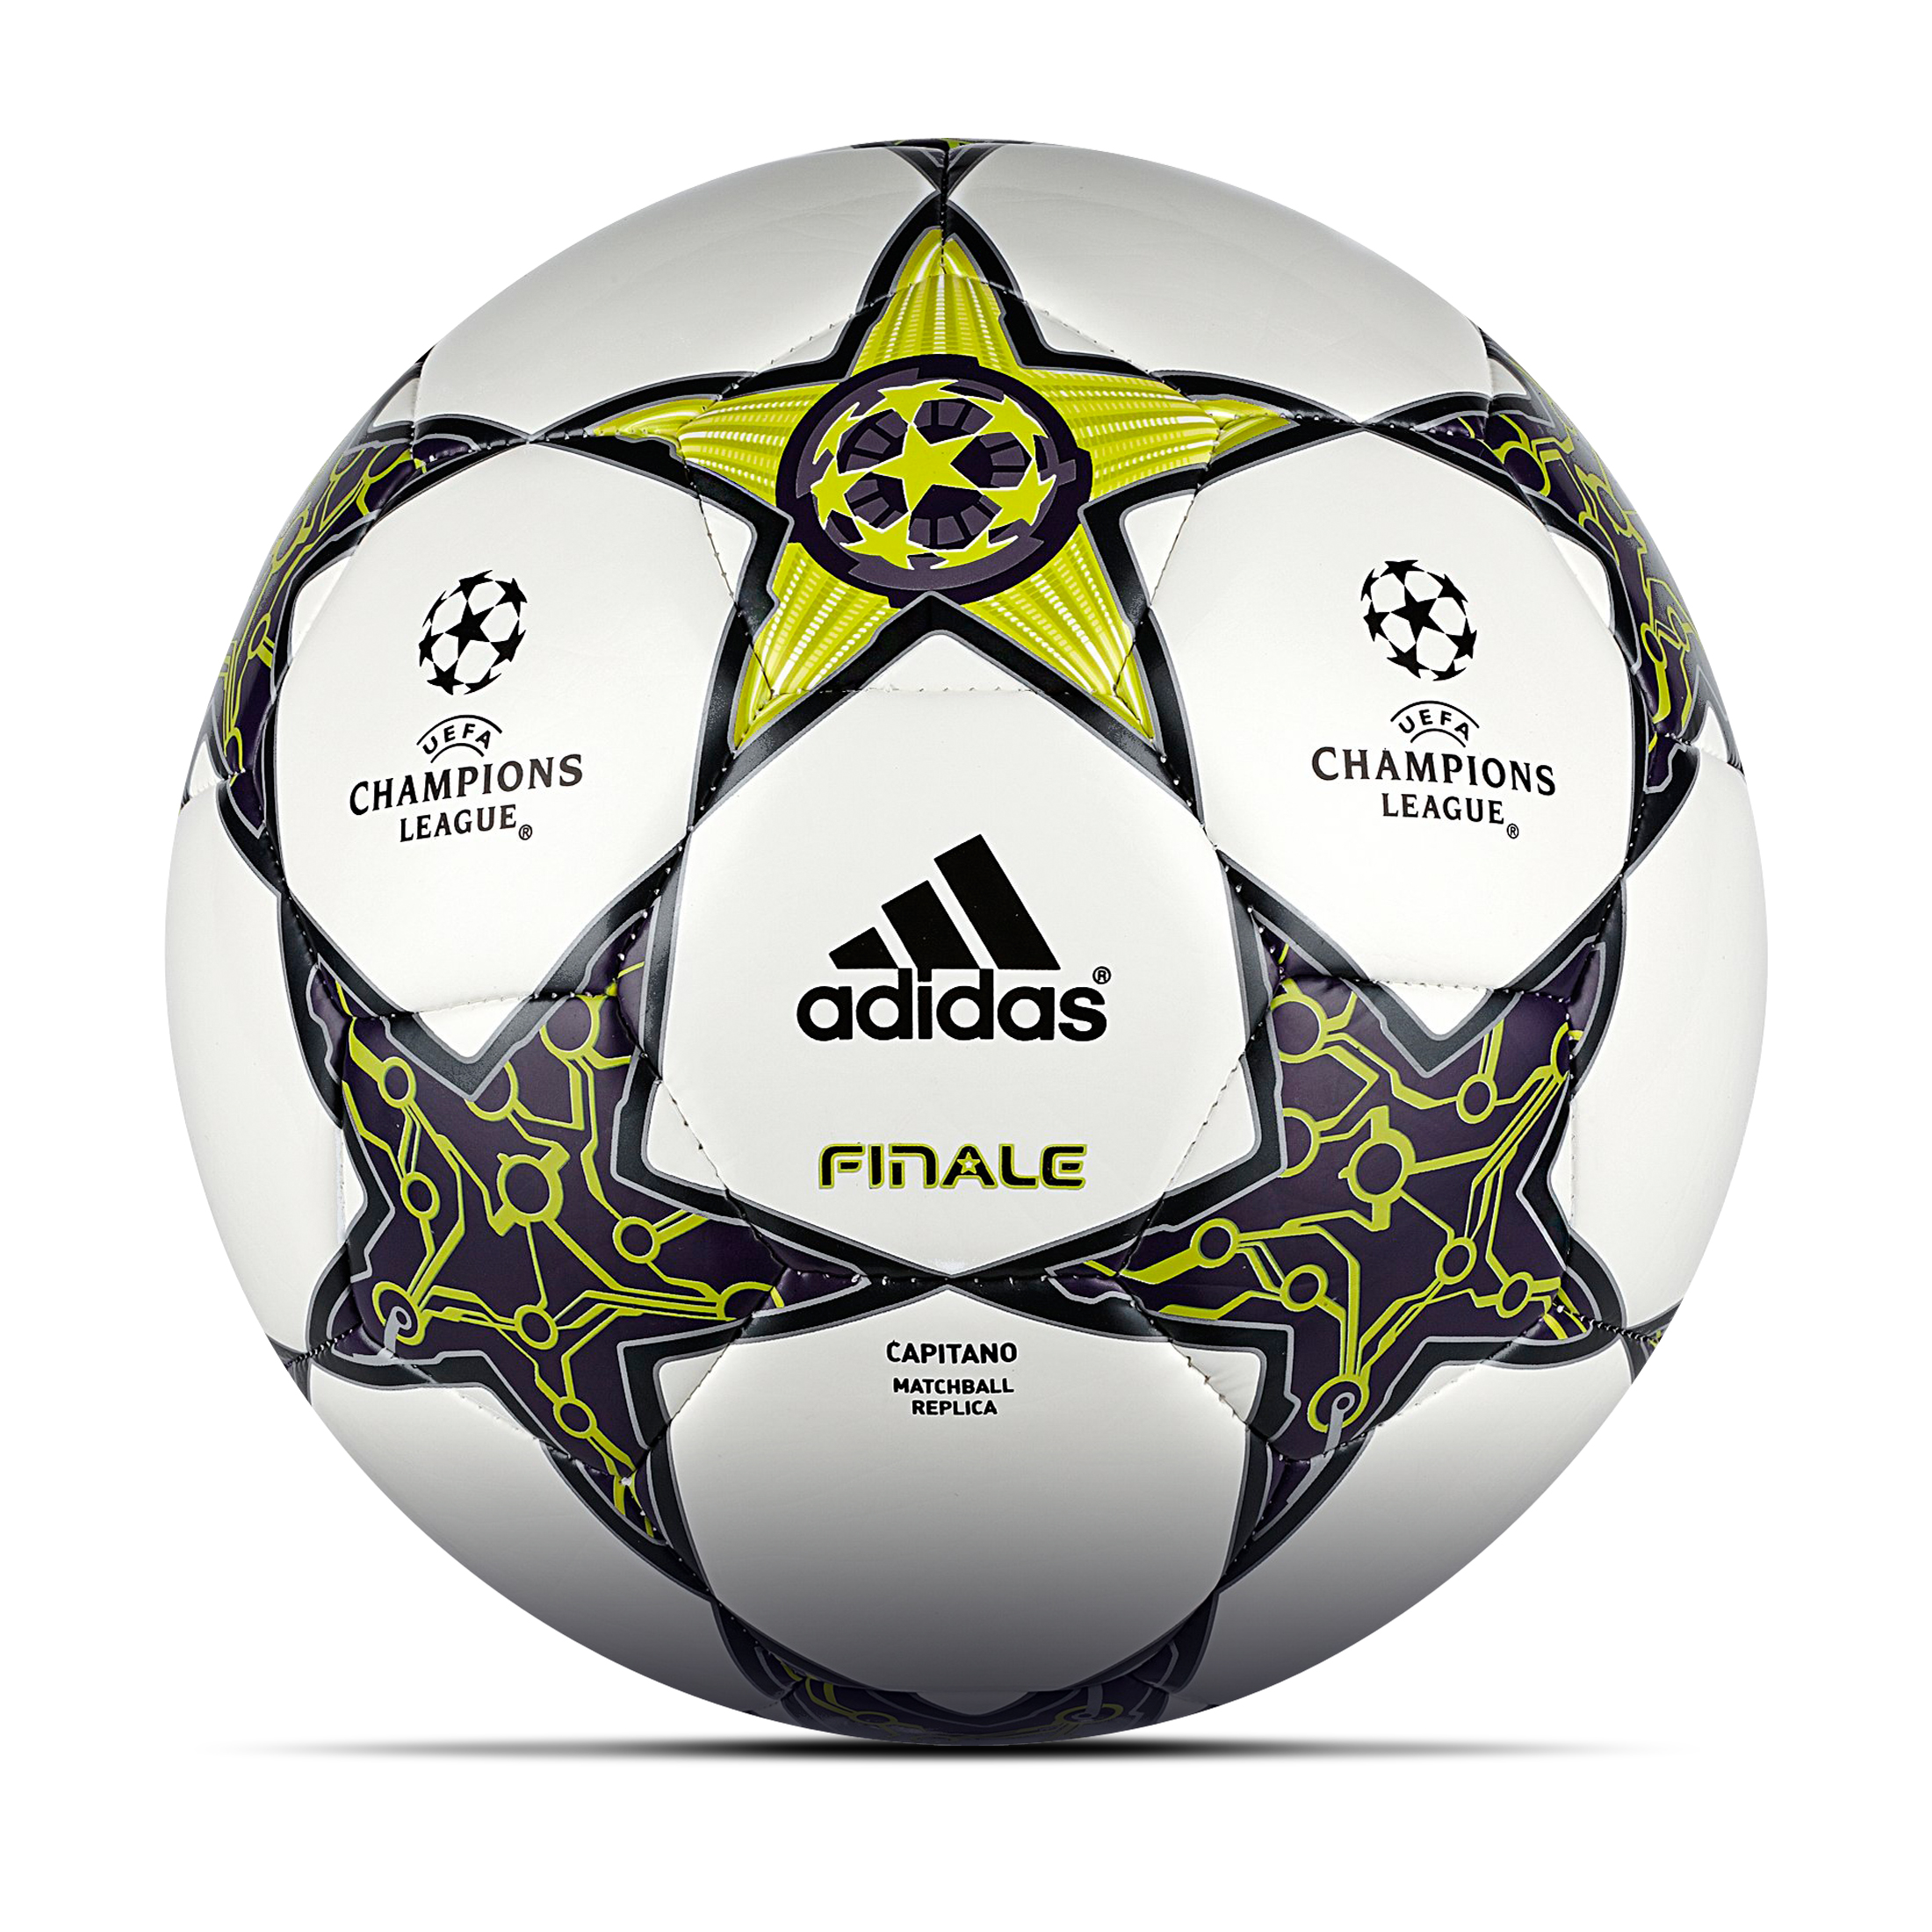 Adidas UEFA Champions League 2012 Finale Capitano Football - White/Lab Lime/Dark Violet